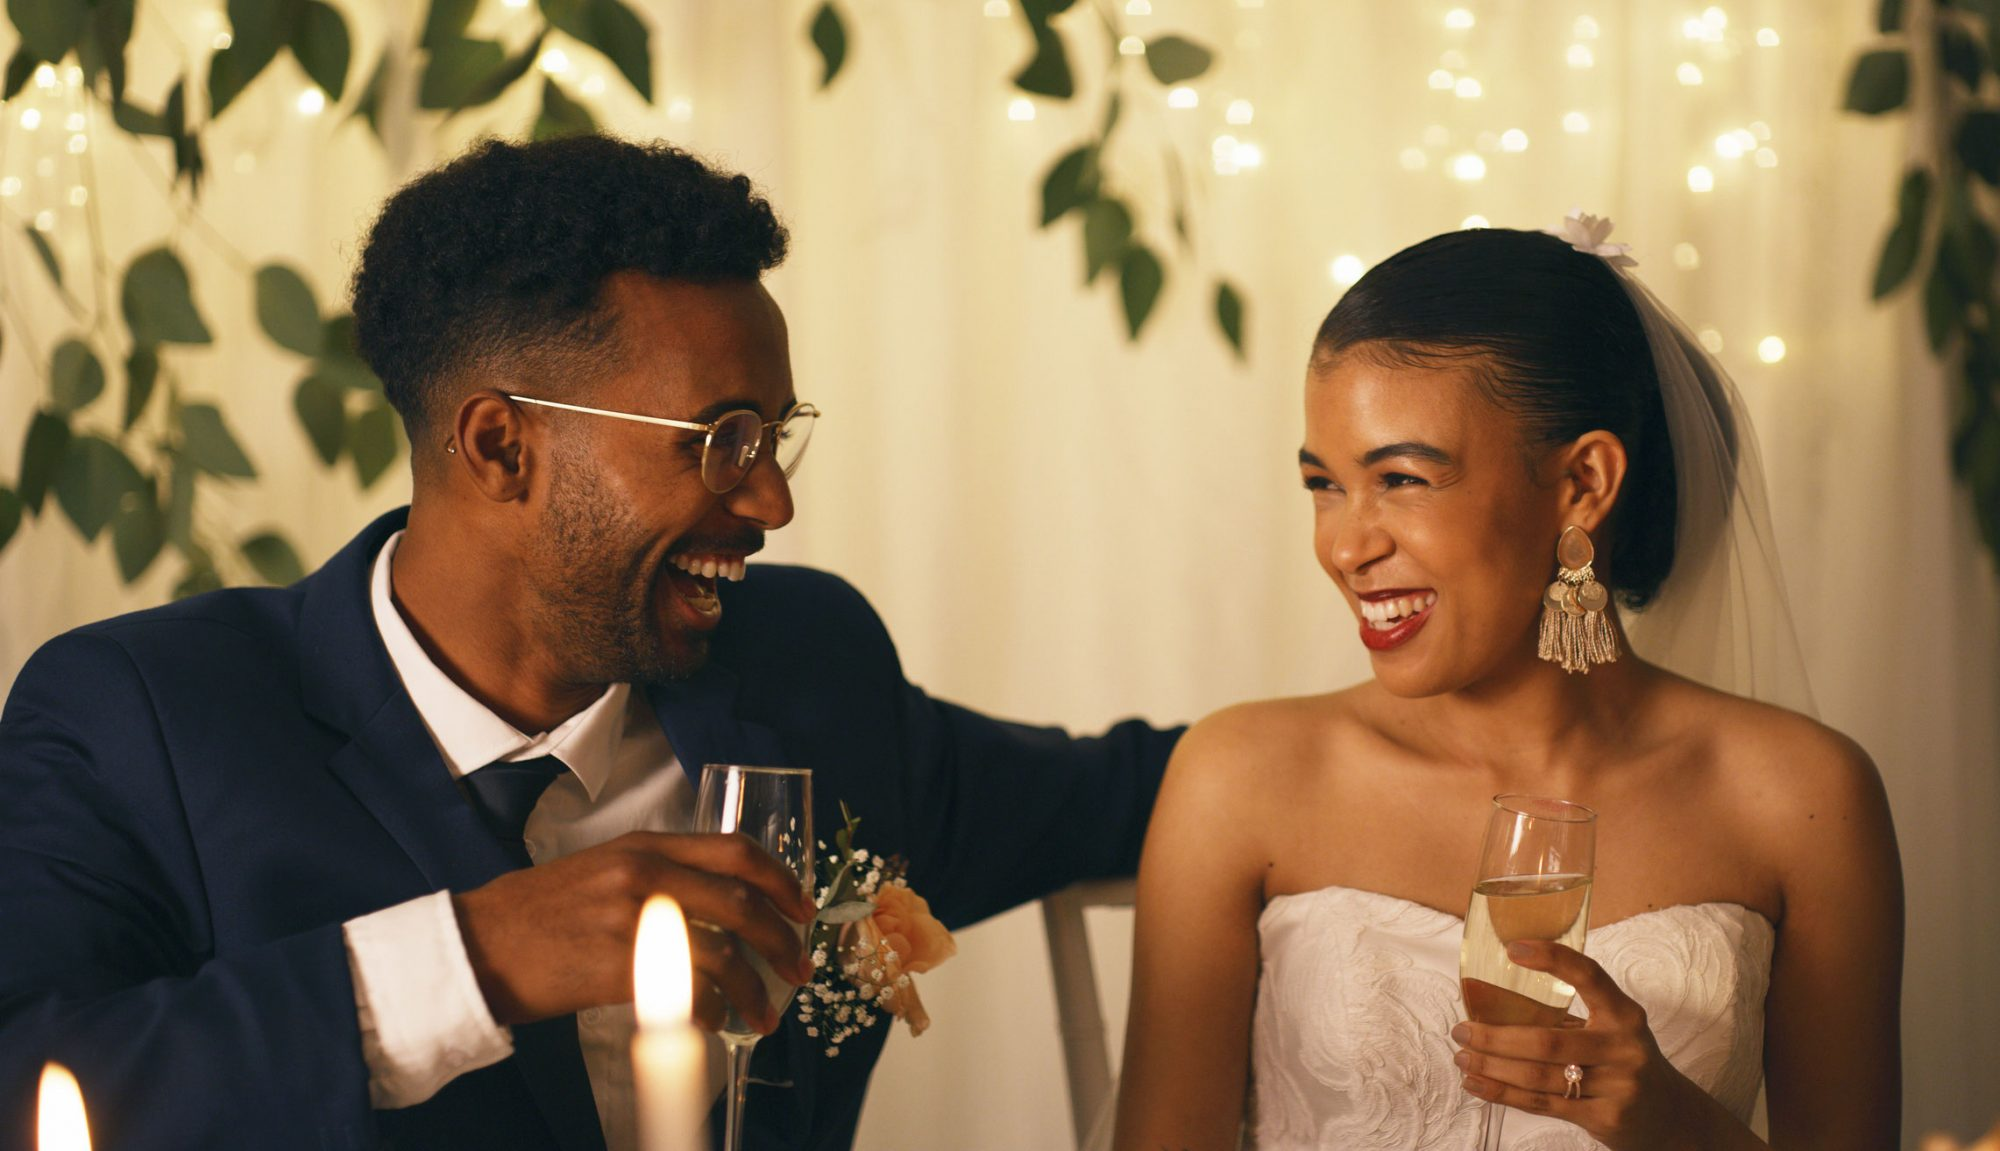 Bride and Groom Smiling During Wedding Toast